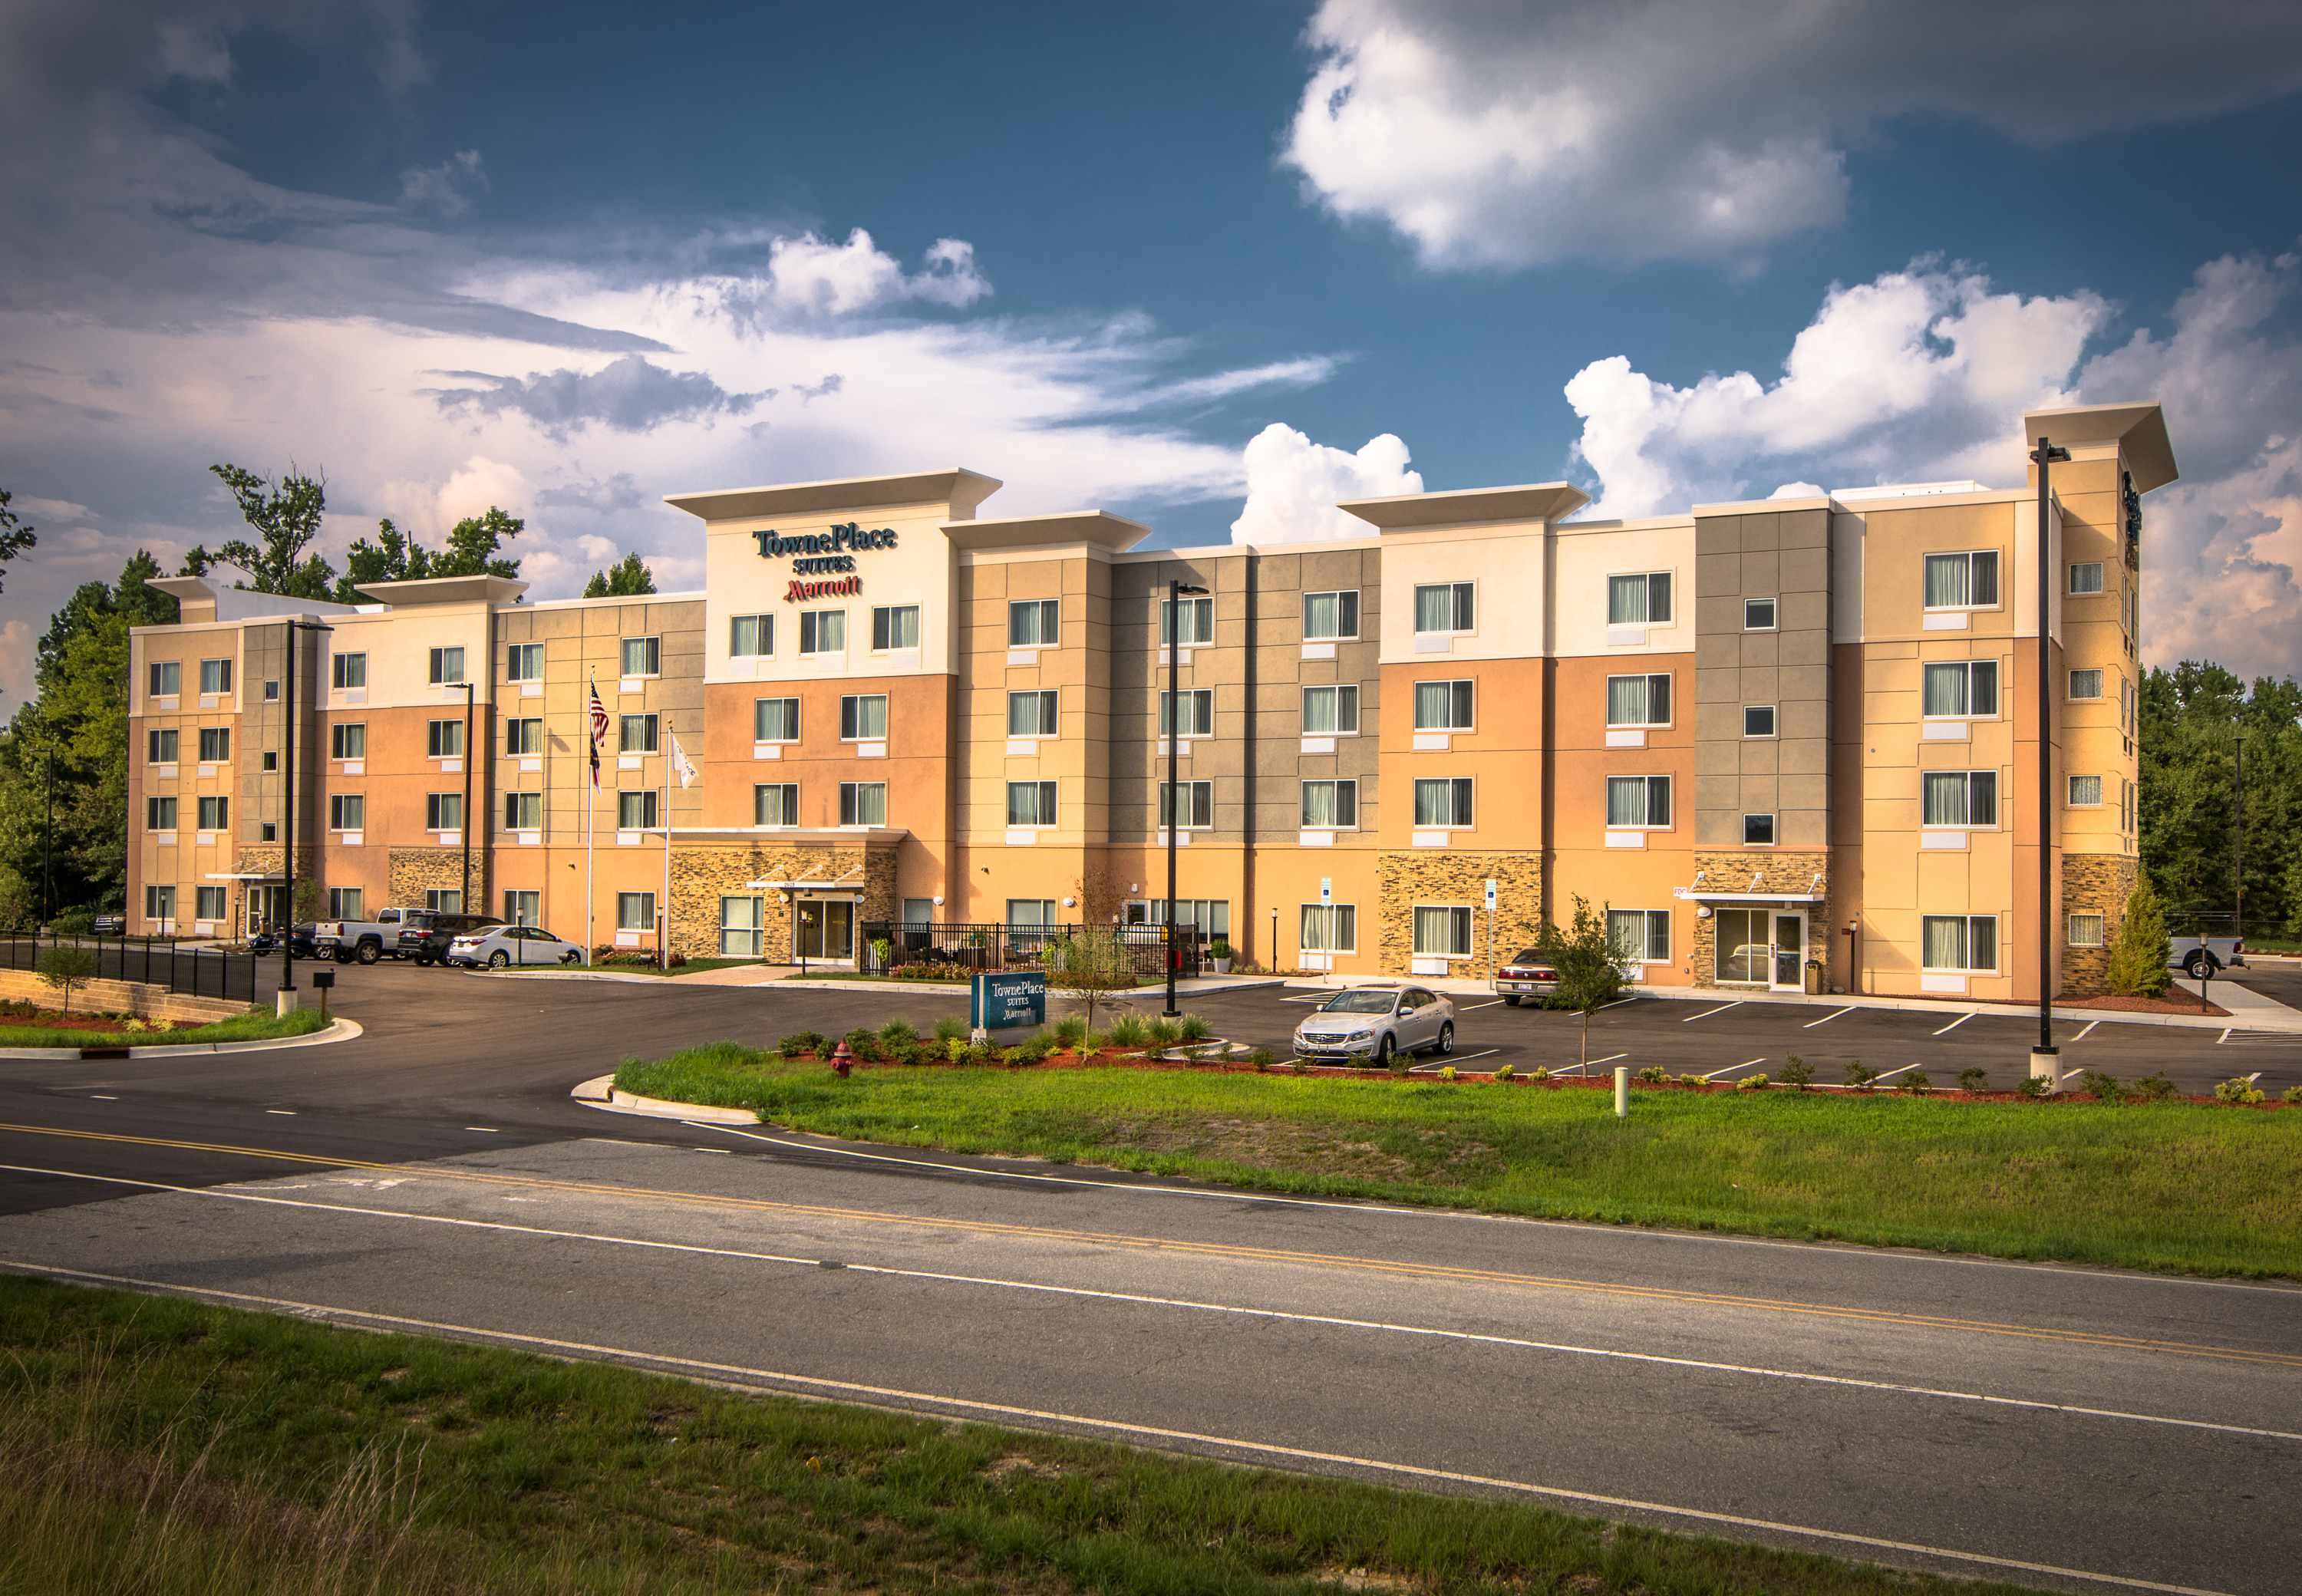 TownePlace Suites by Marriott Goldsboro image 12